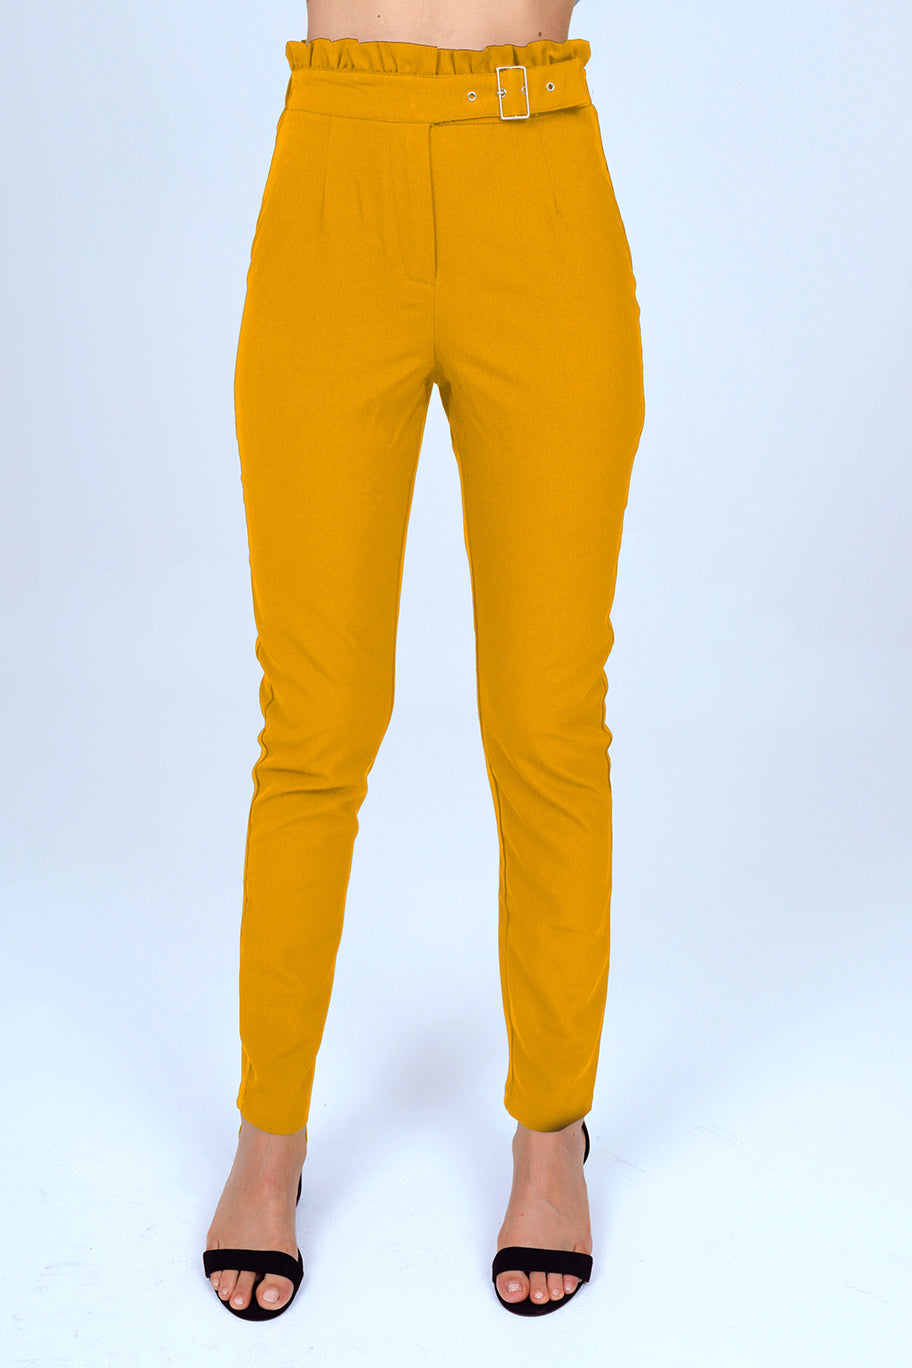 Slim Straight Dress Pant with Buckle in Mustard Yellow